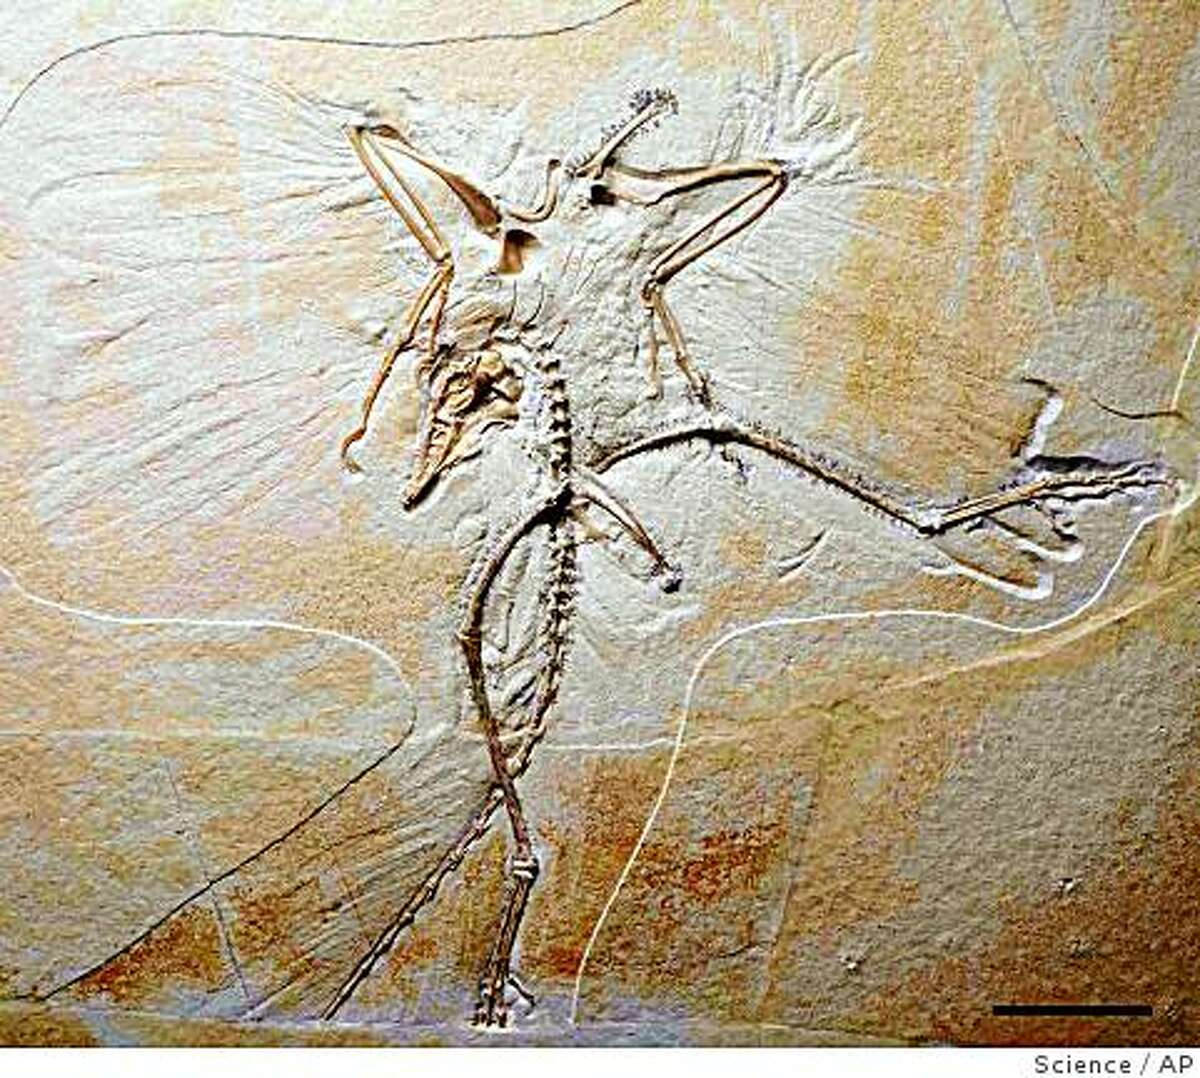 This image provided by the journal Science shows the skeleton, with wing and tail feather impressions, of the tenth specimen of the first known bird, Archaeopteryx, in ventral view. The new specimen provides important details on the feet and skull of these birds and strengthens the widely but not universally accepted argument that modern birds arose from theropod dinosaurs. (AP Photo/Science) Ran on: 12-02-2005 This new archaeopteryx specimen shows skeleton and feather impressions, and it provides new details about the animal's feet. This image provided by the journal Science shows the skeleton, with wing and tail feather impressions, of the tenth specimen of the first known bird, Archaeopteryx, in ventral view. The new specimen provides important details on the feet and skull of these birds and strengthens the widely but not universally accepted argument that modern birds arose from theropod dinosaurs. (AP Photo/Science)